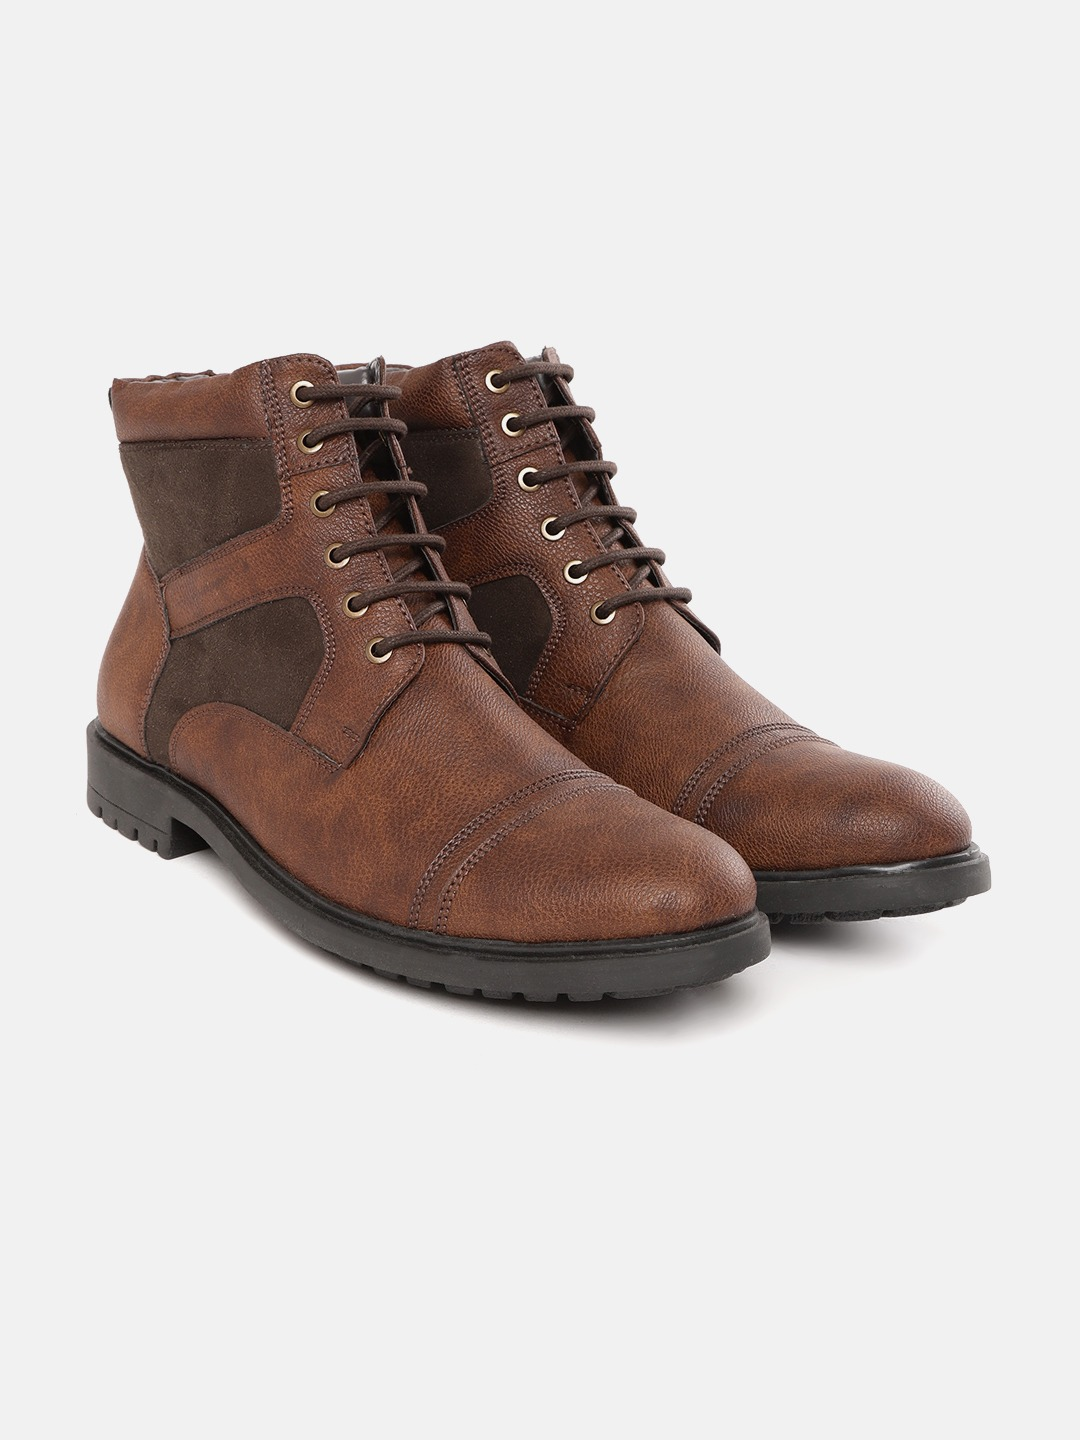 Brown & Olive Green Solid Mid-Top Flat Boots